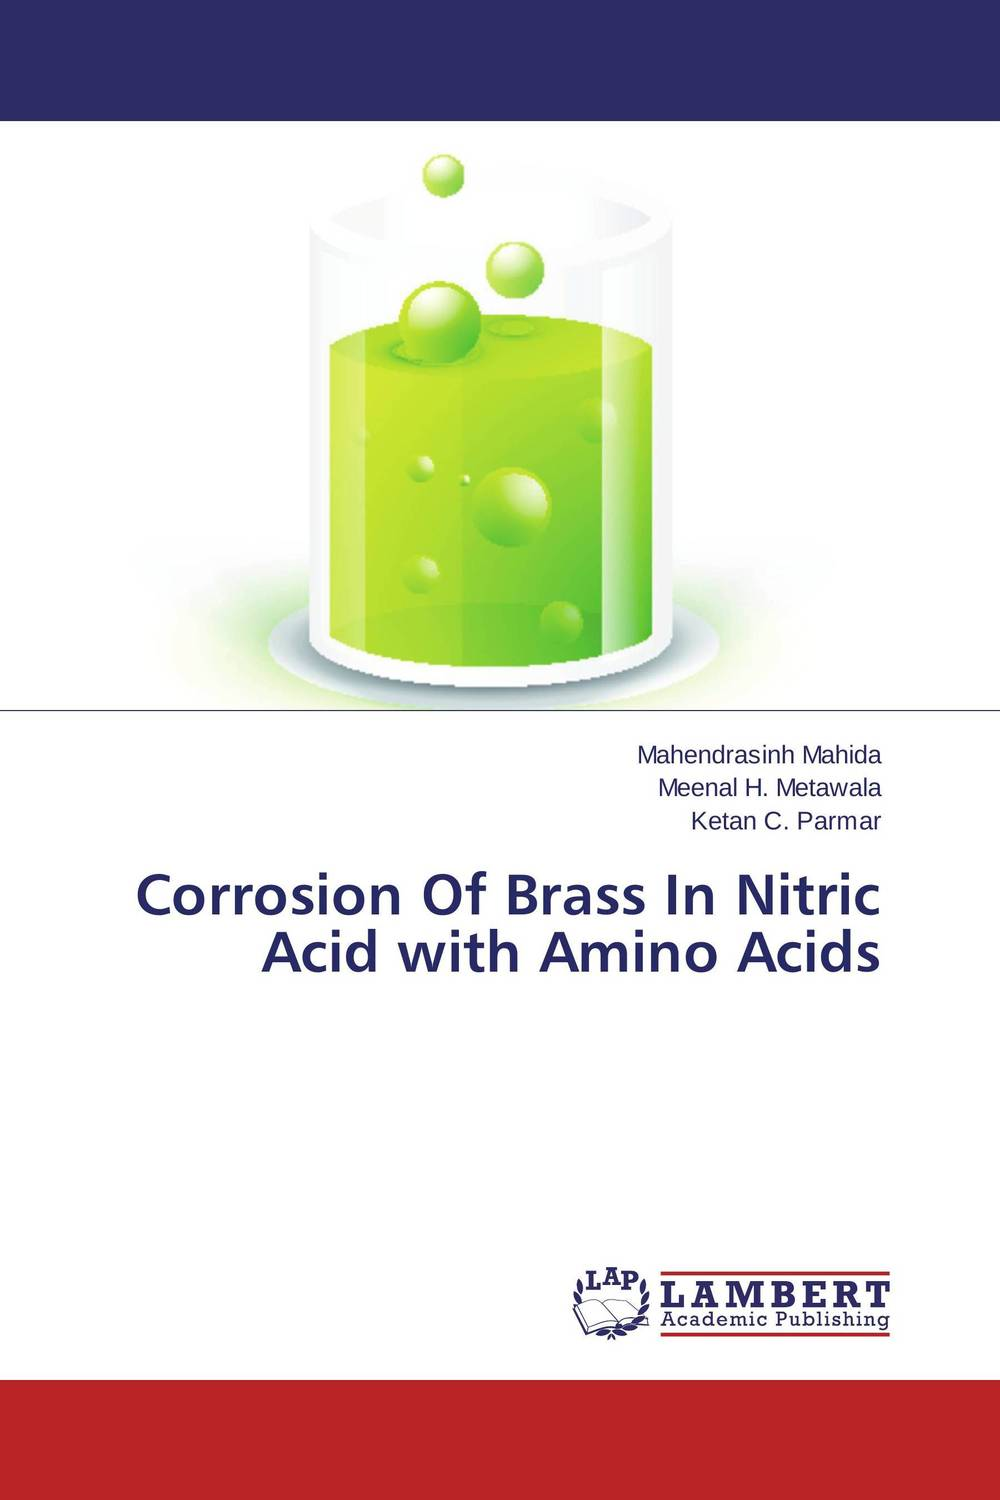 Corrosion Of Brass In Nitric Acid with Amino Acids